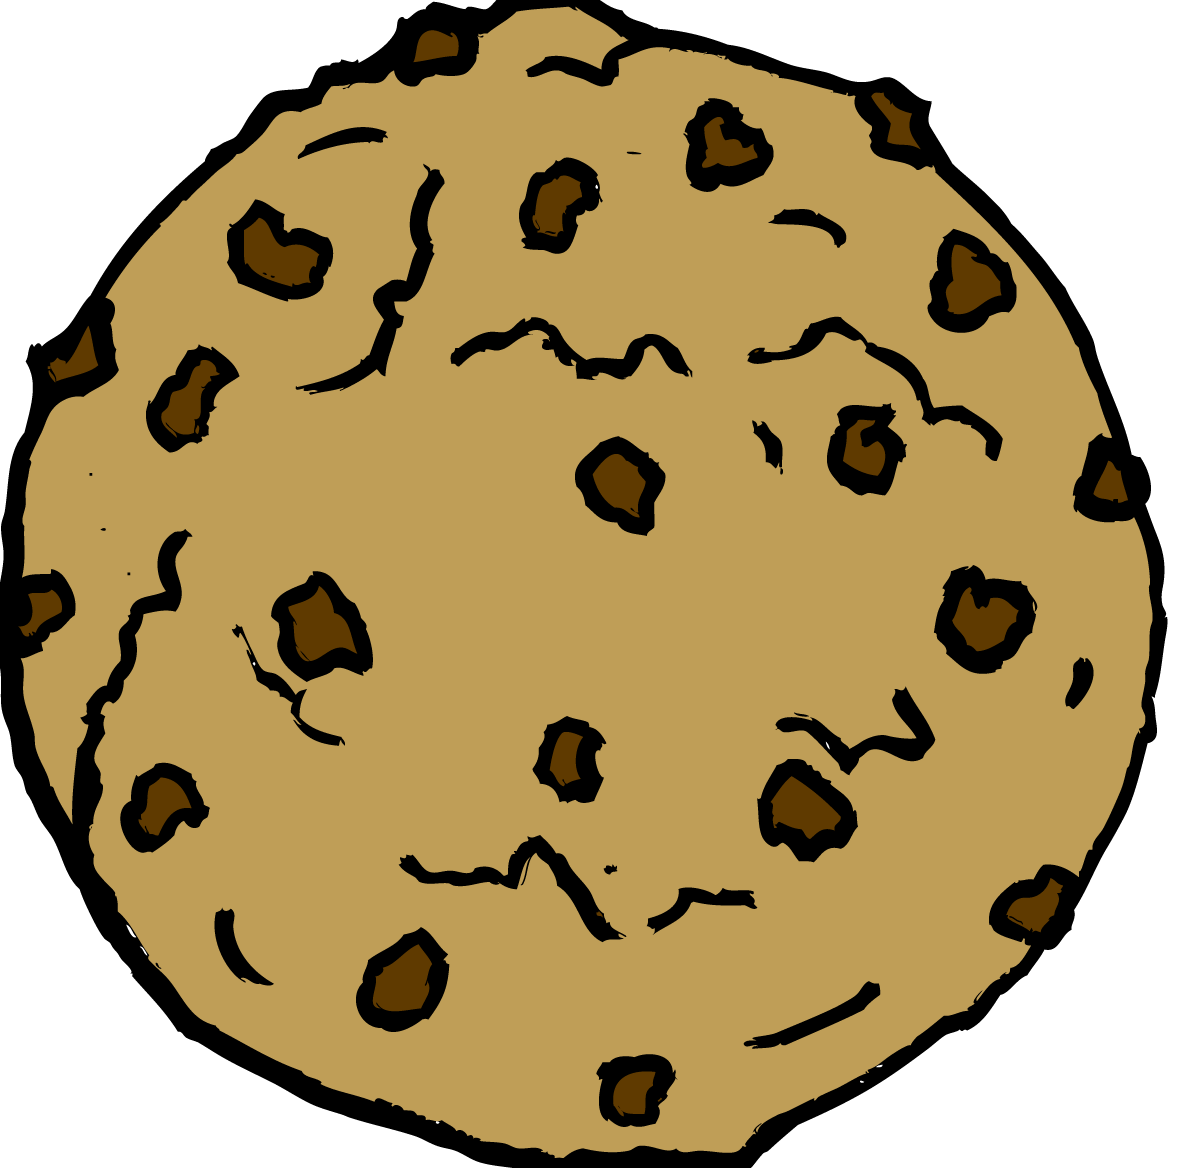 Chocolate chip cookie clipart 2